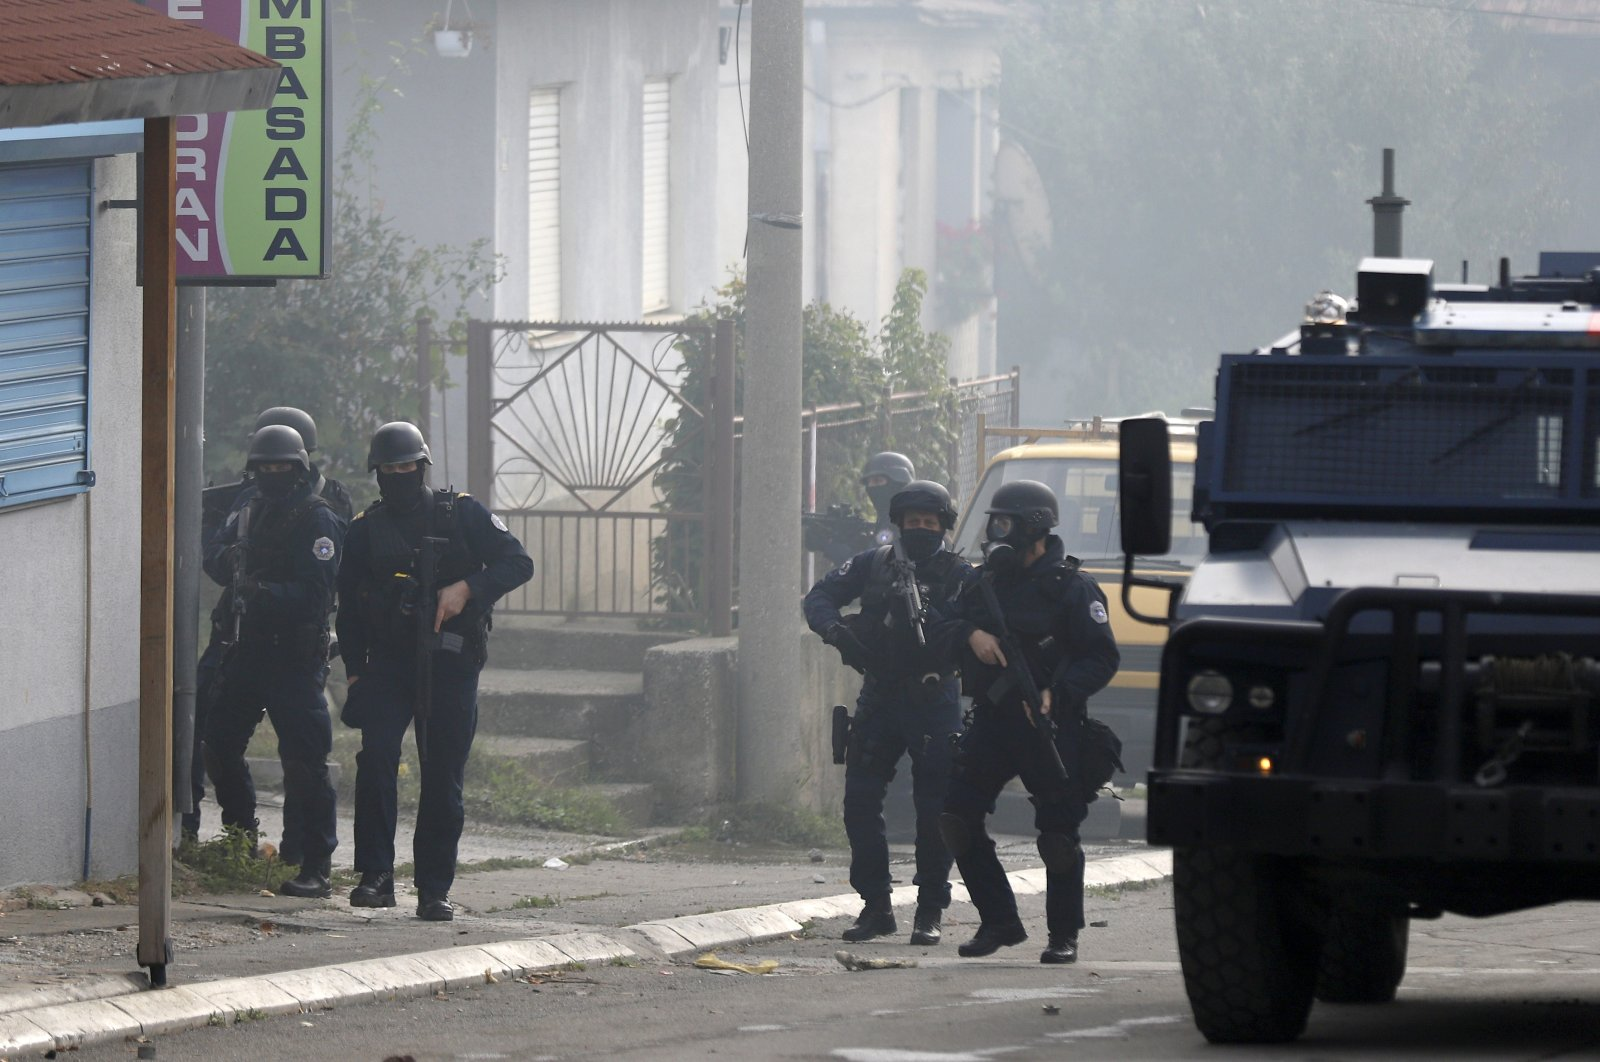 Kosovo police officers guard a street in the northern Serb-dominated part of ethnically divided town of Mitrovica, Kosovo, Oct. 13, 2021. (AP Photo)